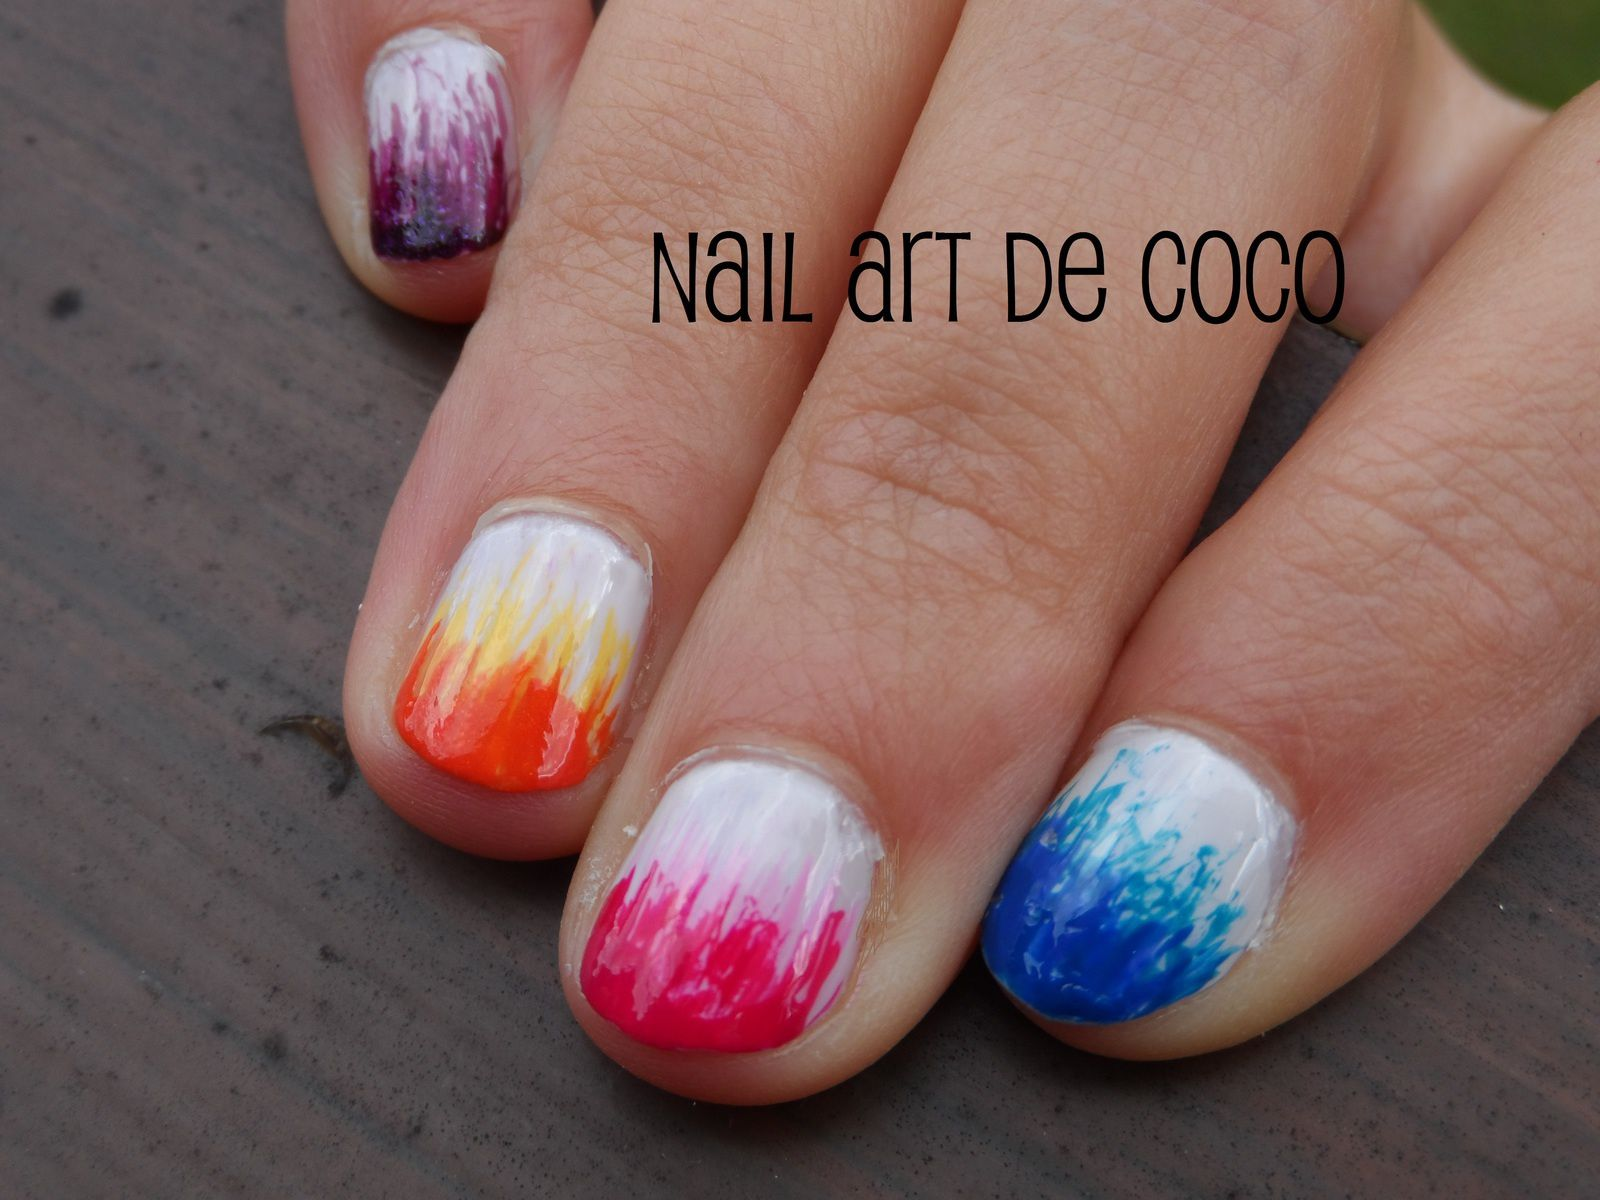 nail art d grad original et multicolor au liner pinceau fin effet balayage nail art de coco. Black Bedroom Furniture Sets. Home Design Ideas